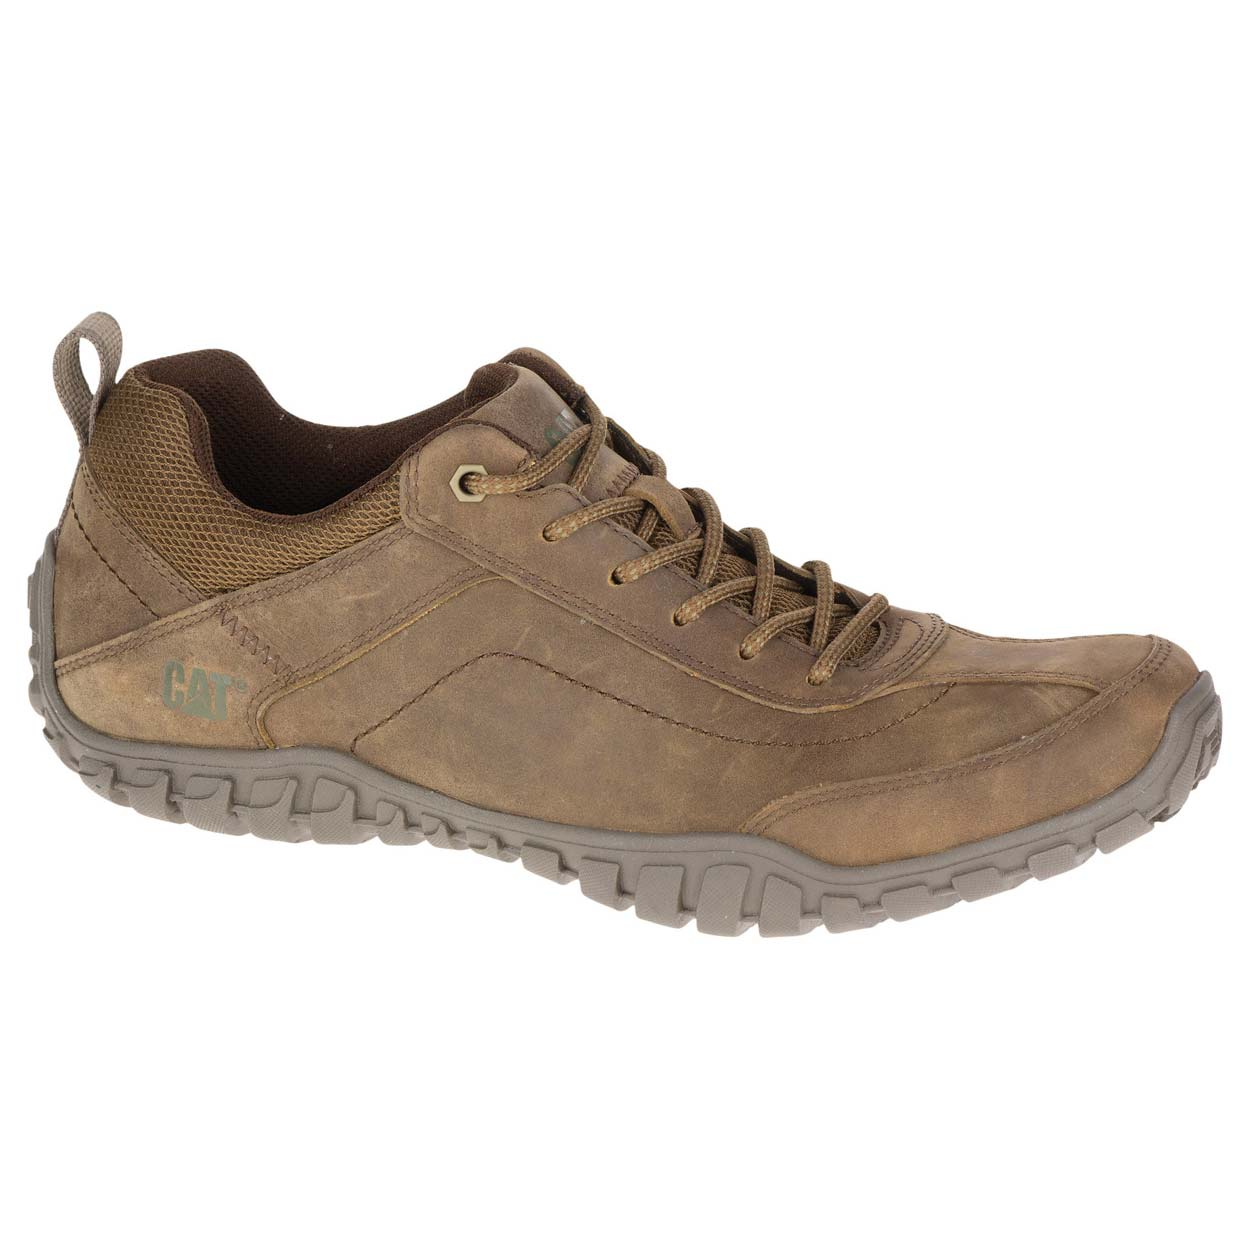 Caterpillar Womens Shoes South Africa